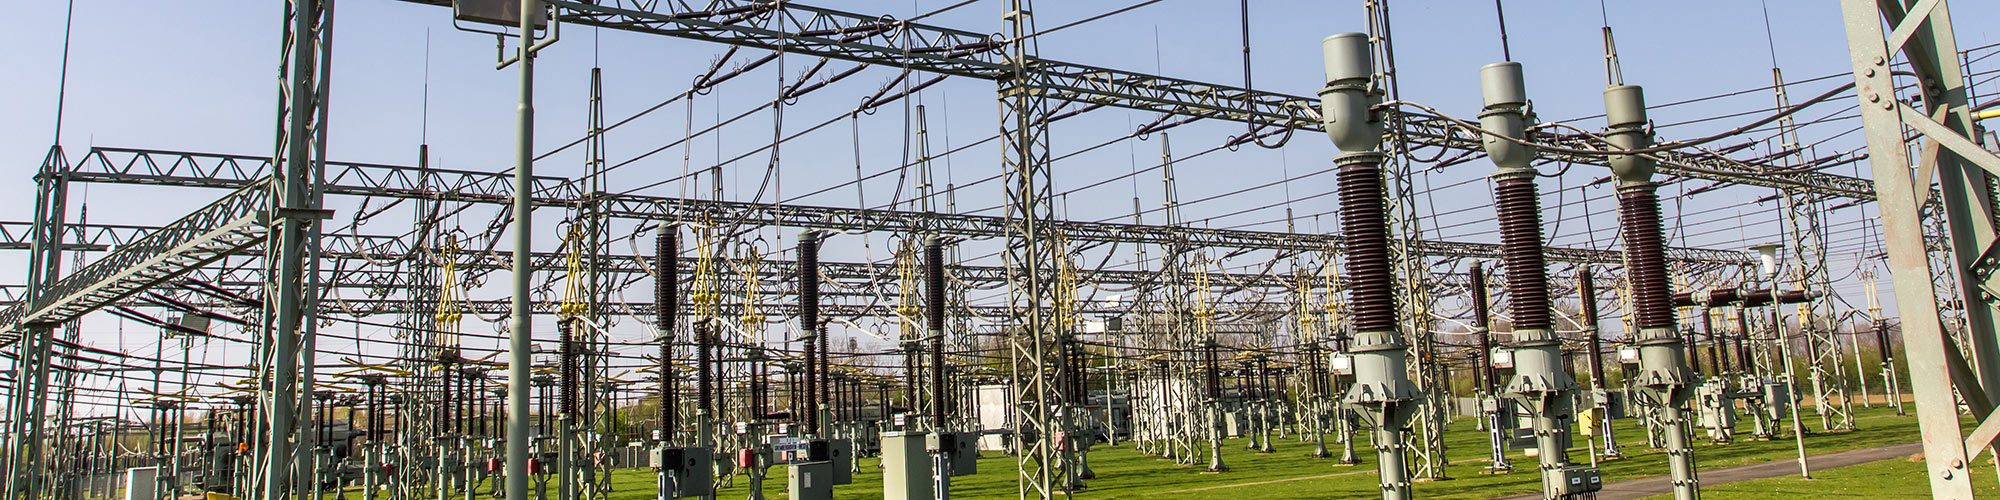 Operating transformer stations safely